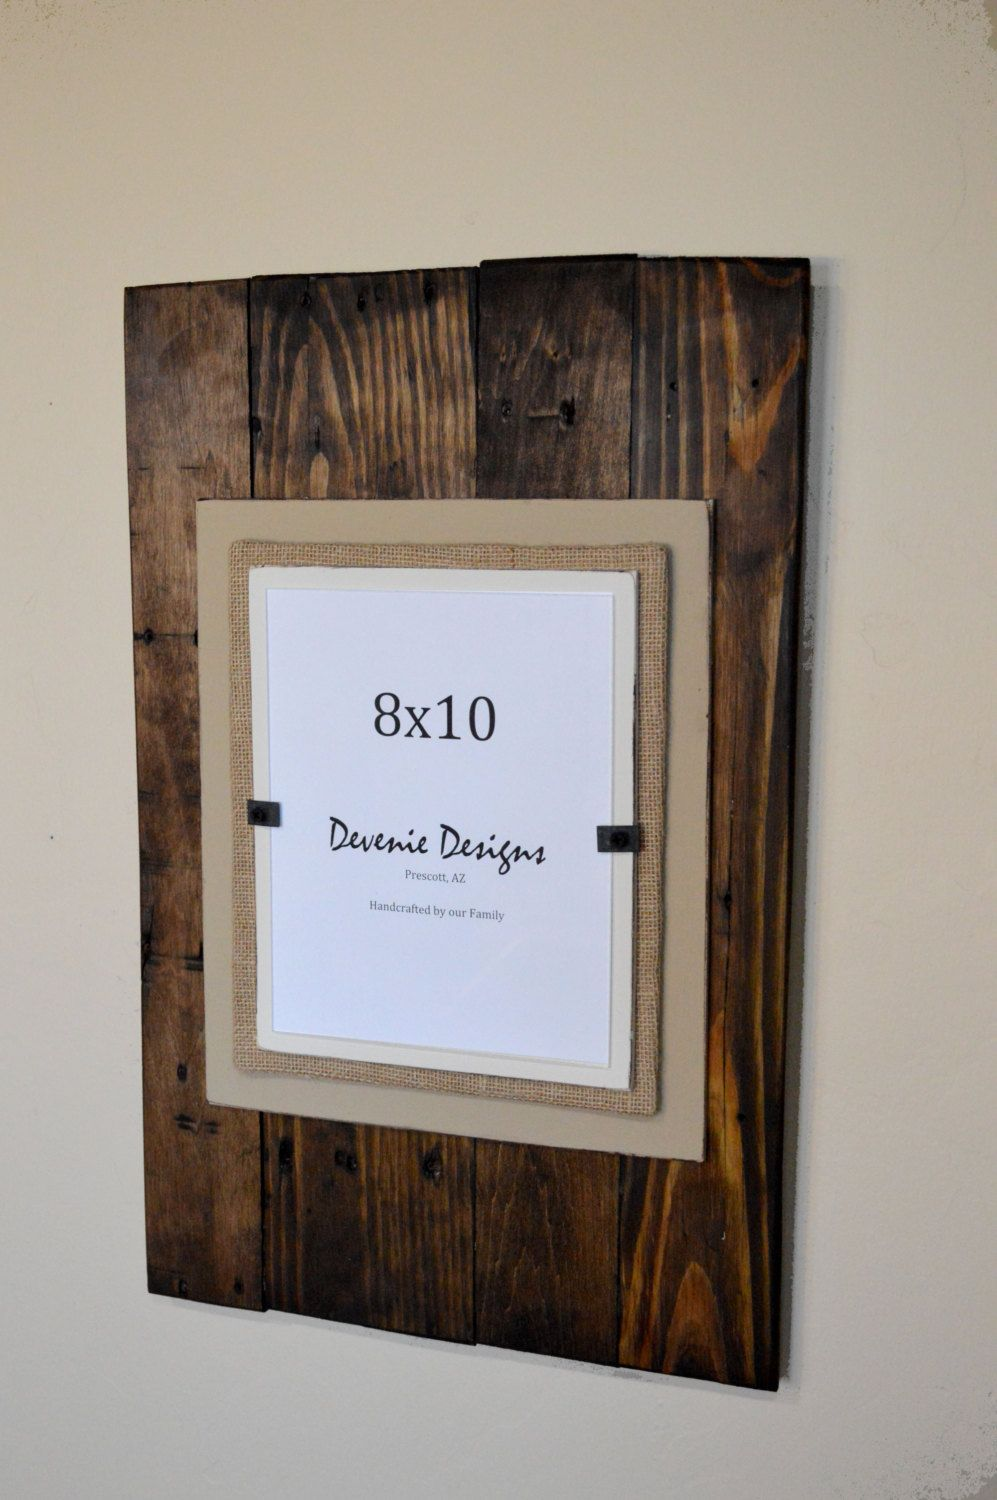 Plank Reclaimed Wood Frame - Holds 8x10 photo - 16x24\